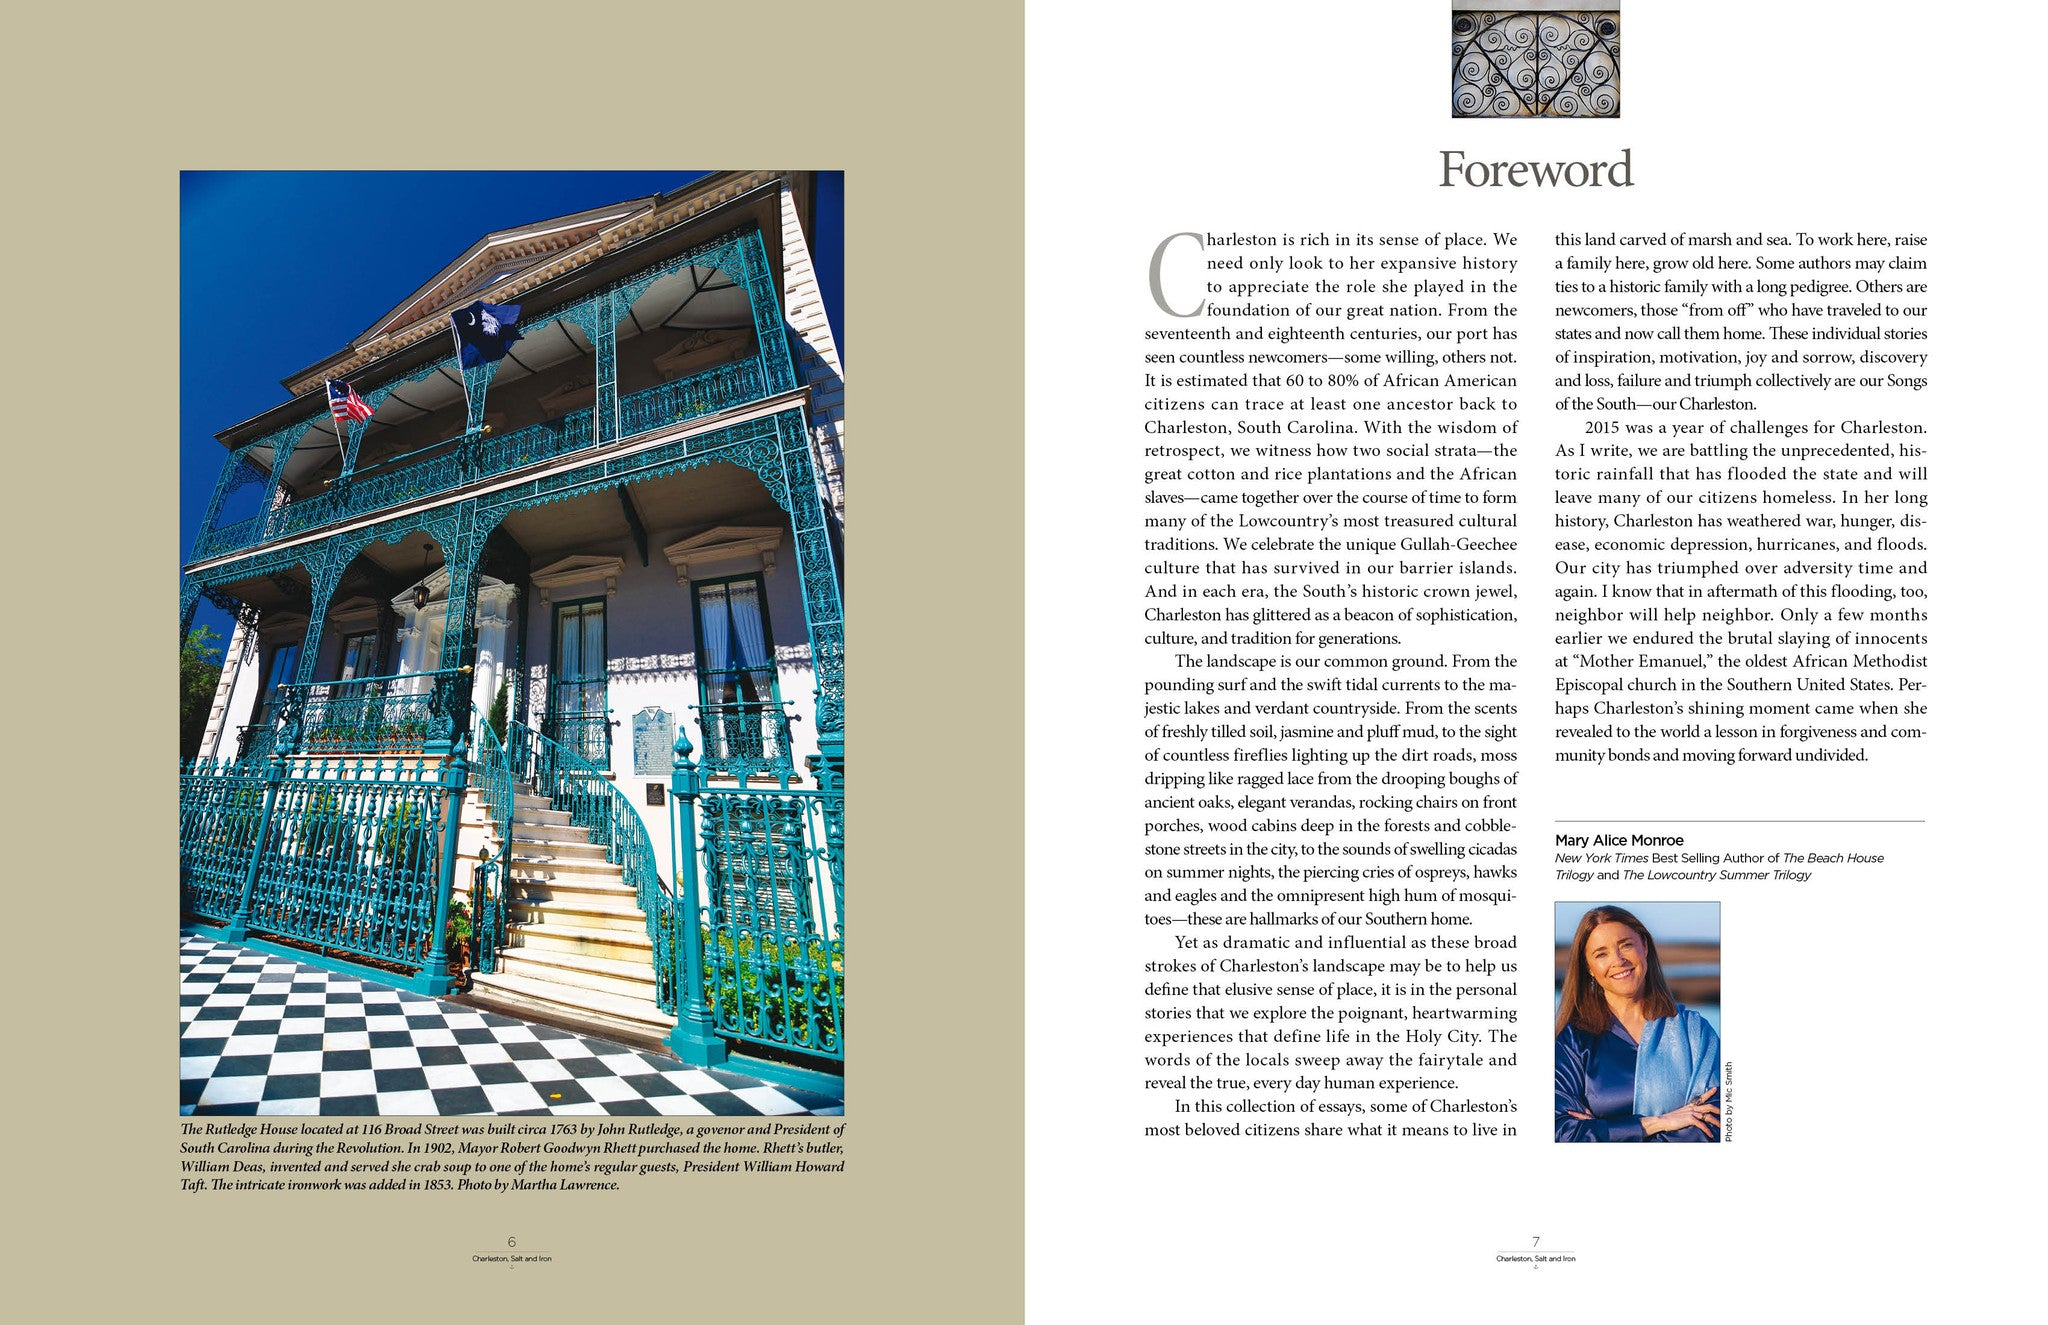 Rutledge House and Mary Alice Monroe foreword in Charleston Salt and Iron book Starbooks